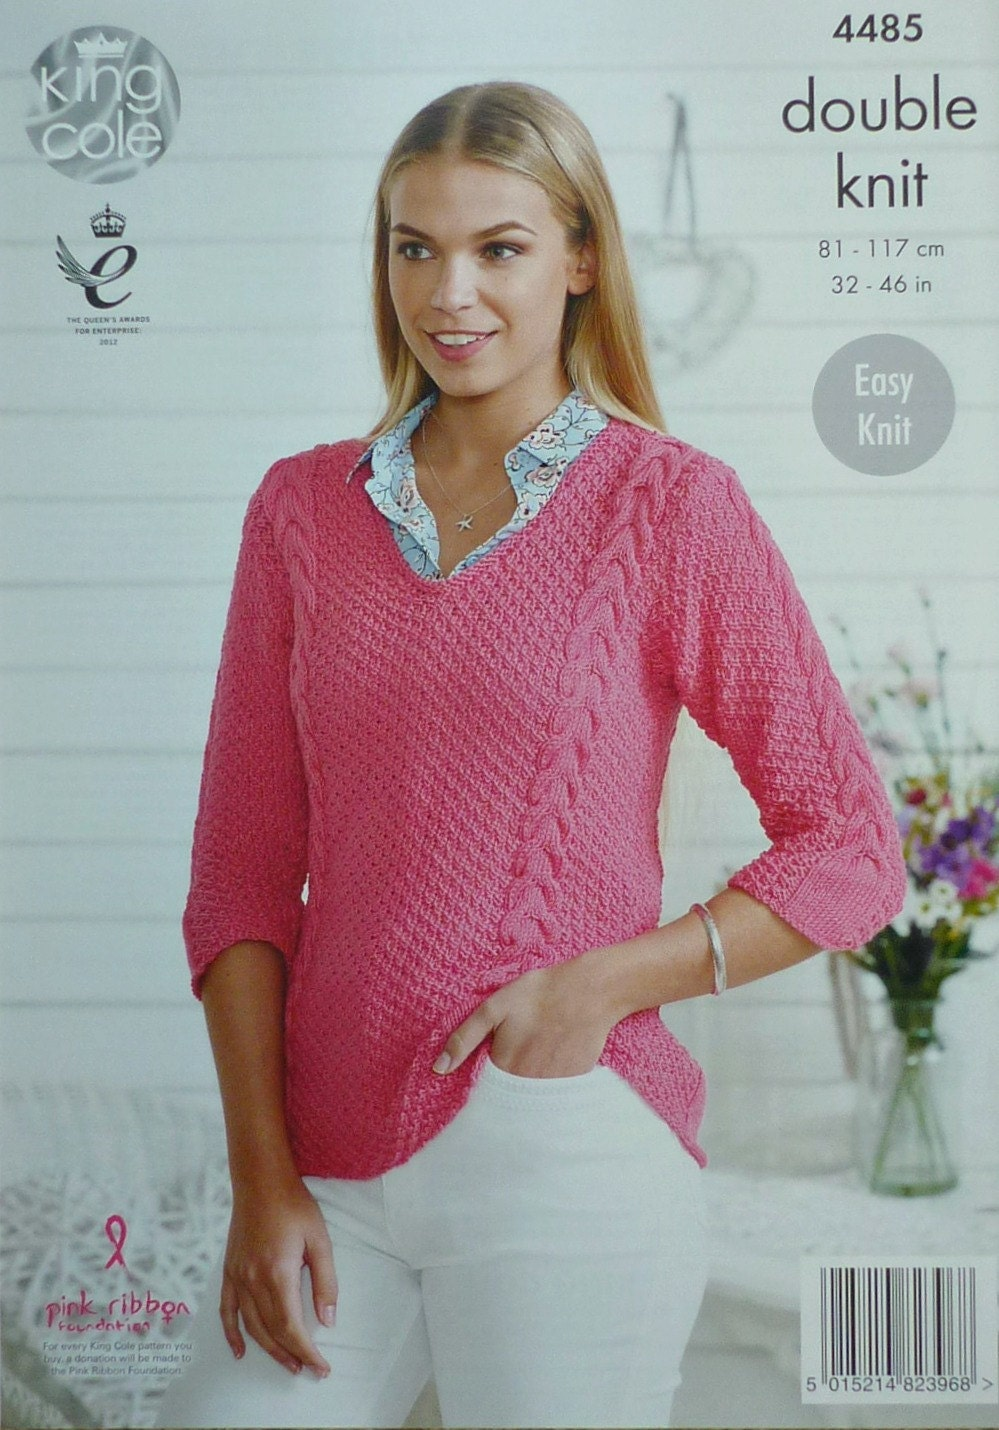 Womens knitting pattern k4485 ladies easy knit 34 sleeve v neck womens knitting pattern k4485 ladies easy knit 34 sleeve v neck cable moss stitch jumper knitting pattern dk light worsted king cole bankloansurffo Image collections